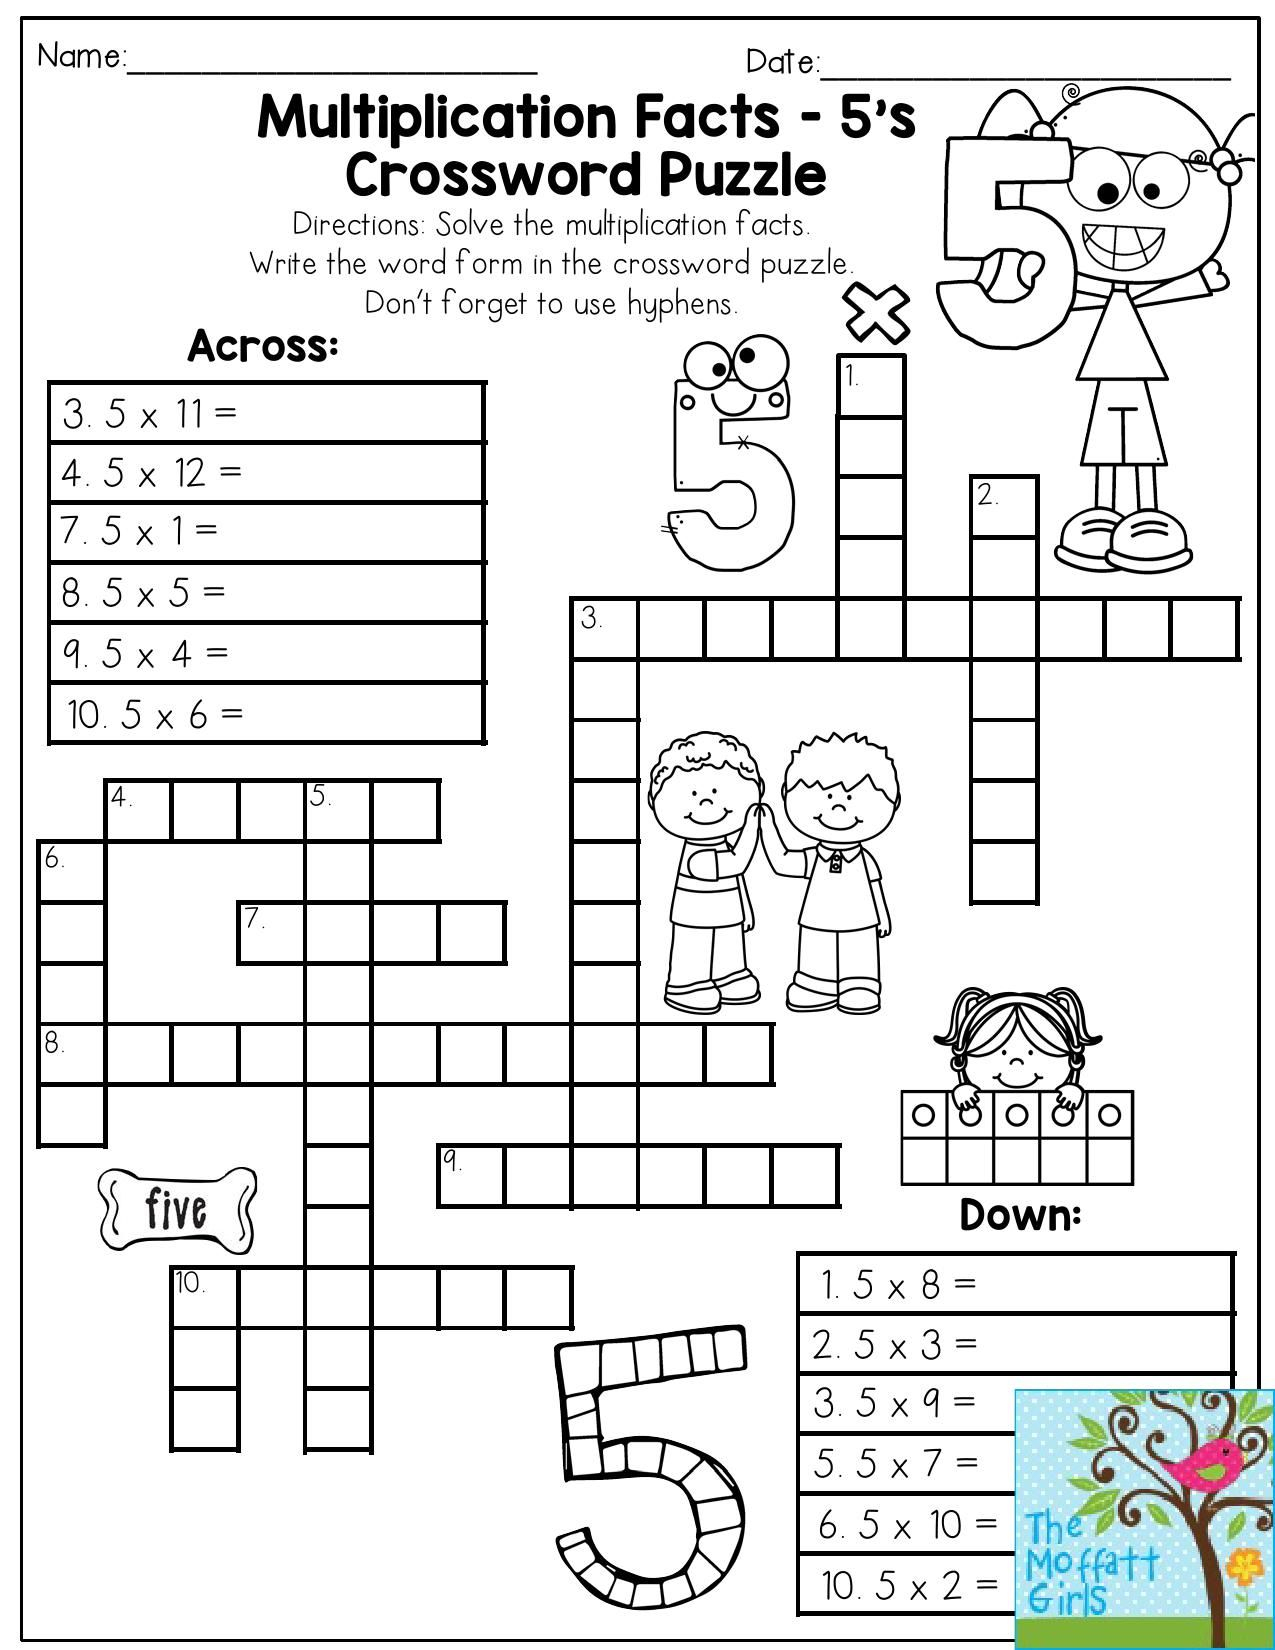 Multiplication Facts Crossword Puzzle- Third Grade Students Love - Grade 1 Crossword Puzzles Printable